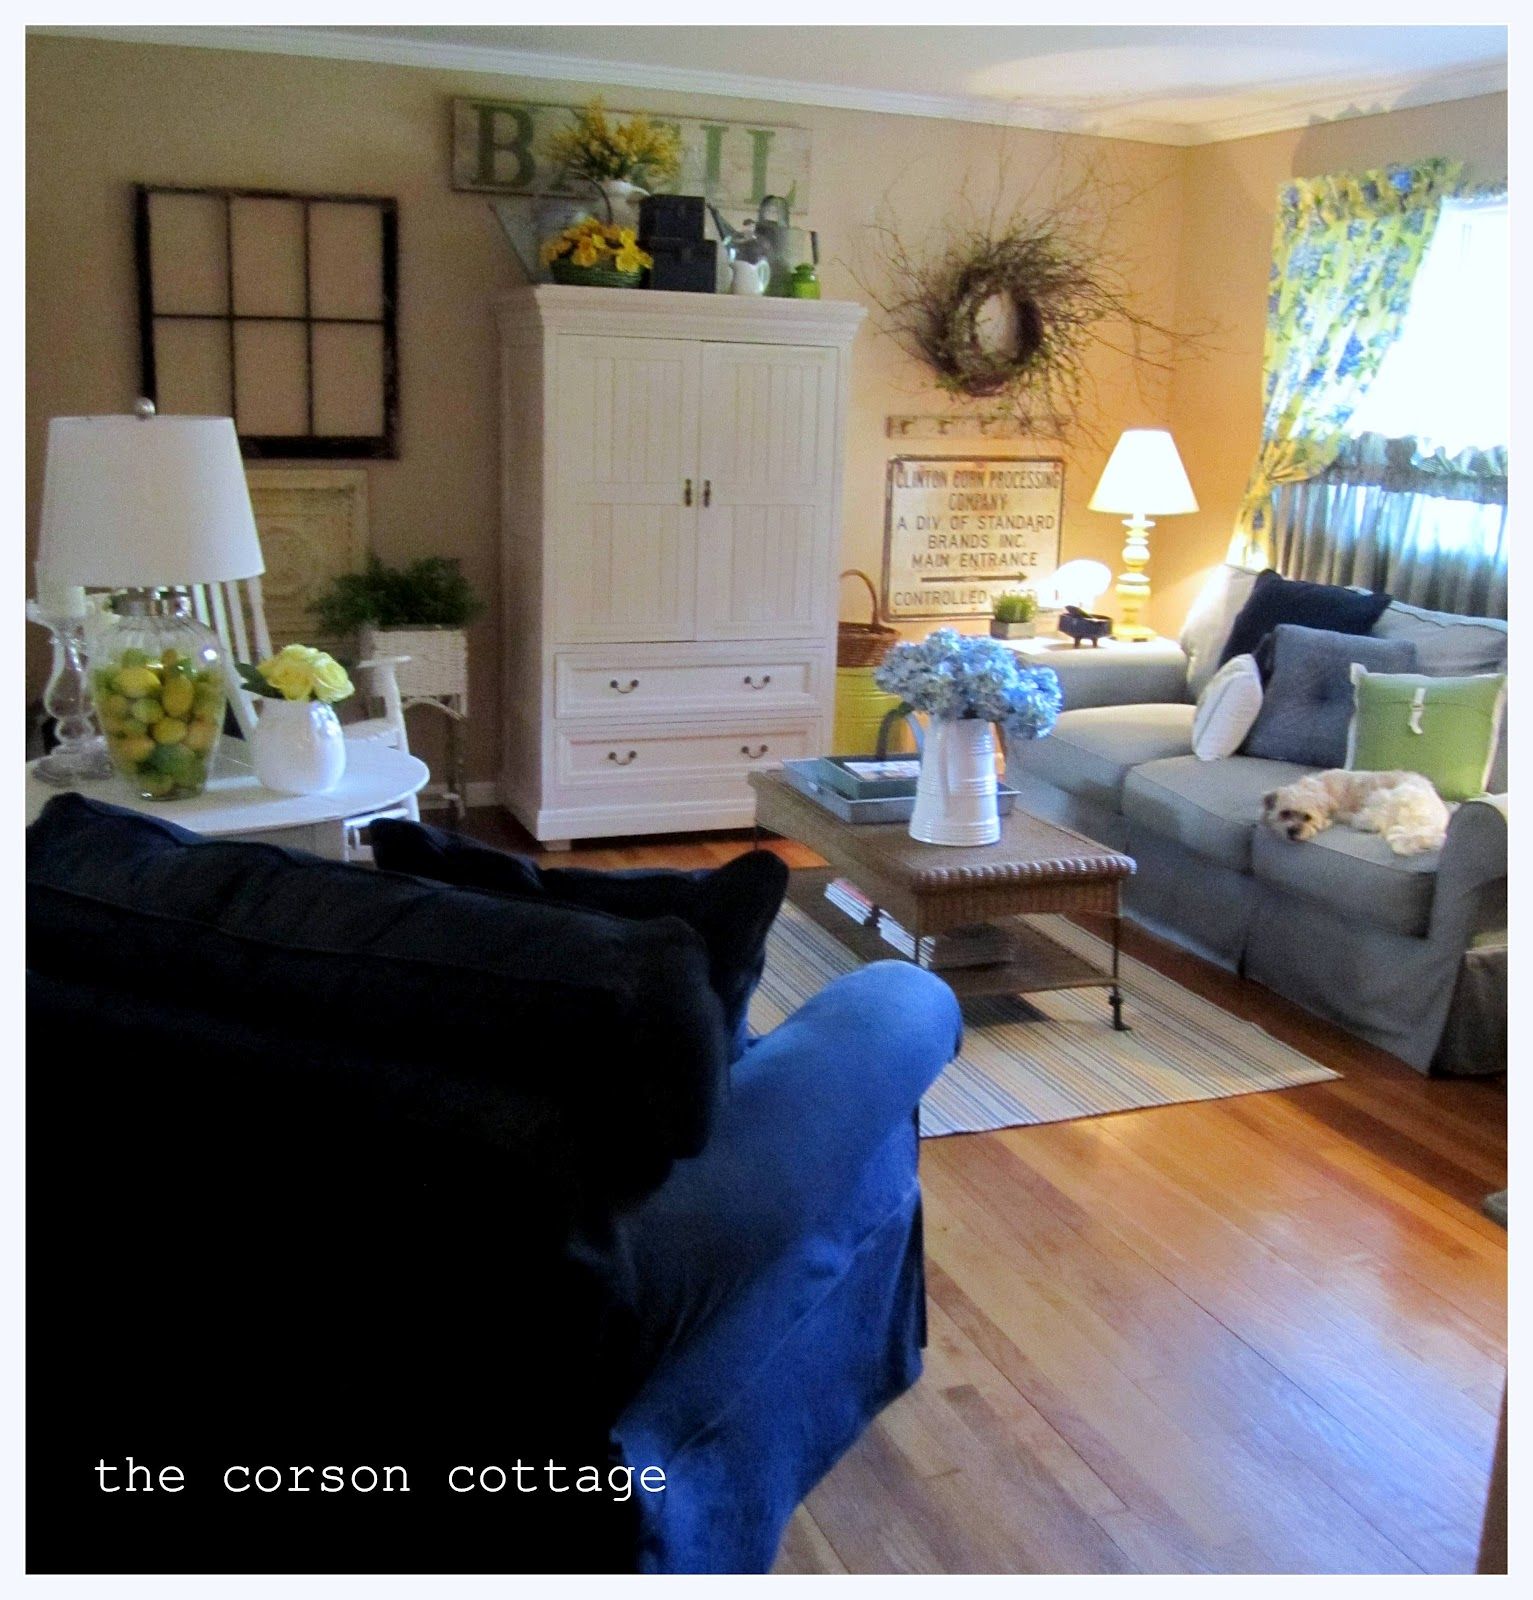 the corson cottage featured country cottage living room